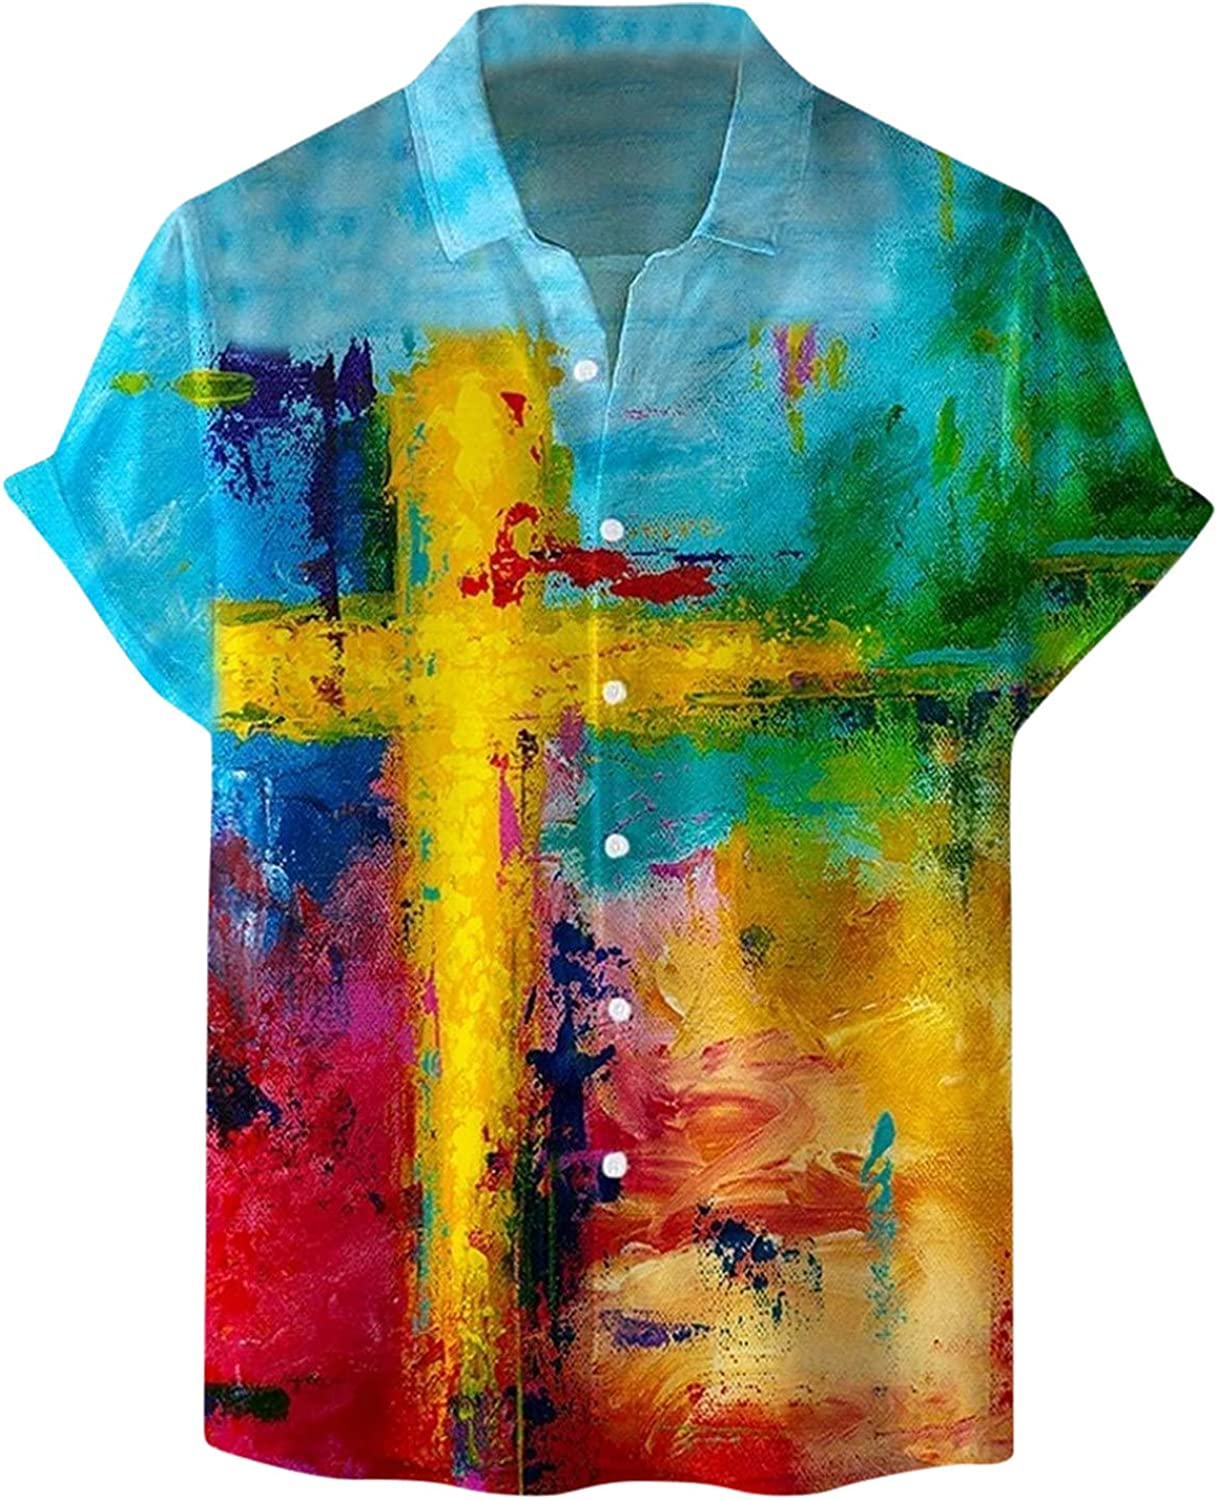 Rapid rise Mens Short Sleeve Ranking TOP8 Button Down Printed Graphic Fashion Top Shirts